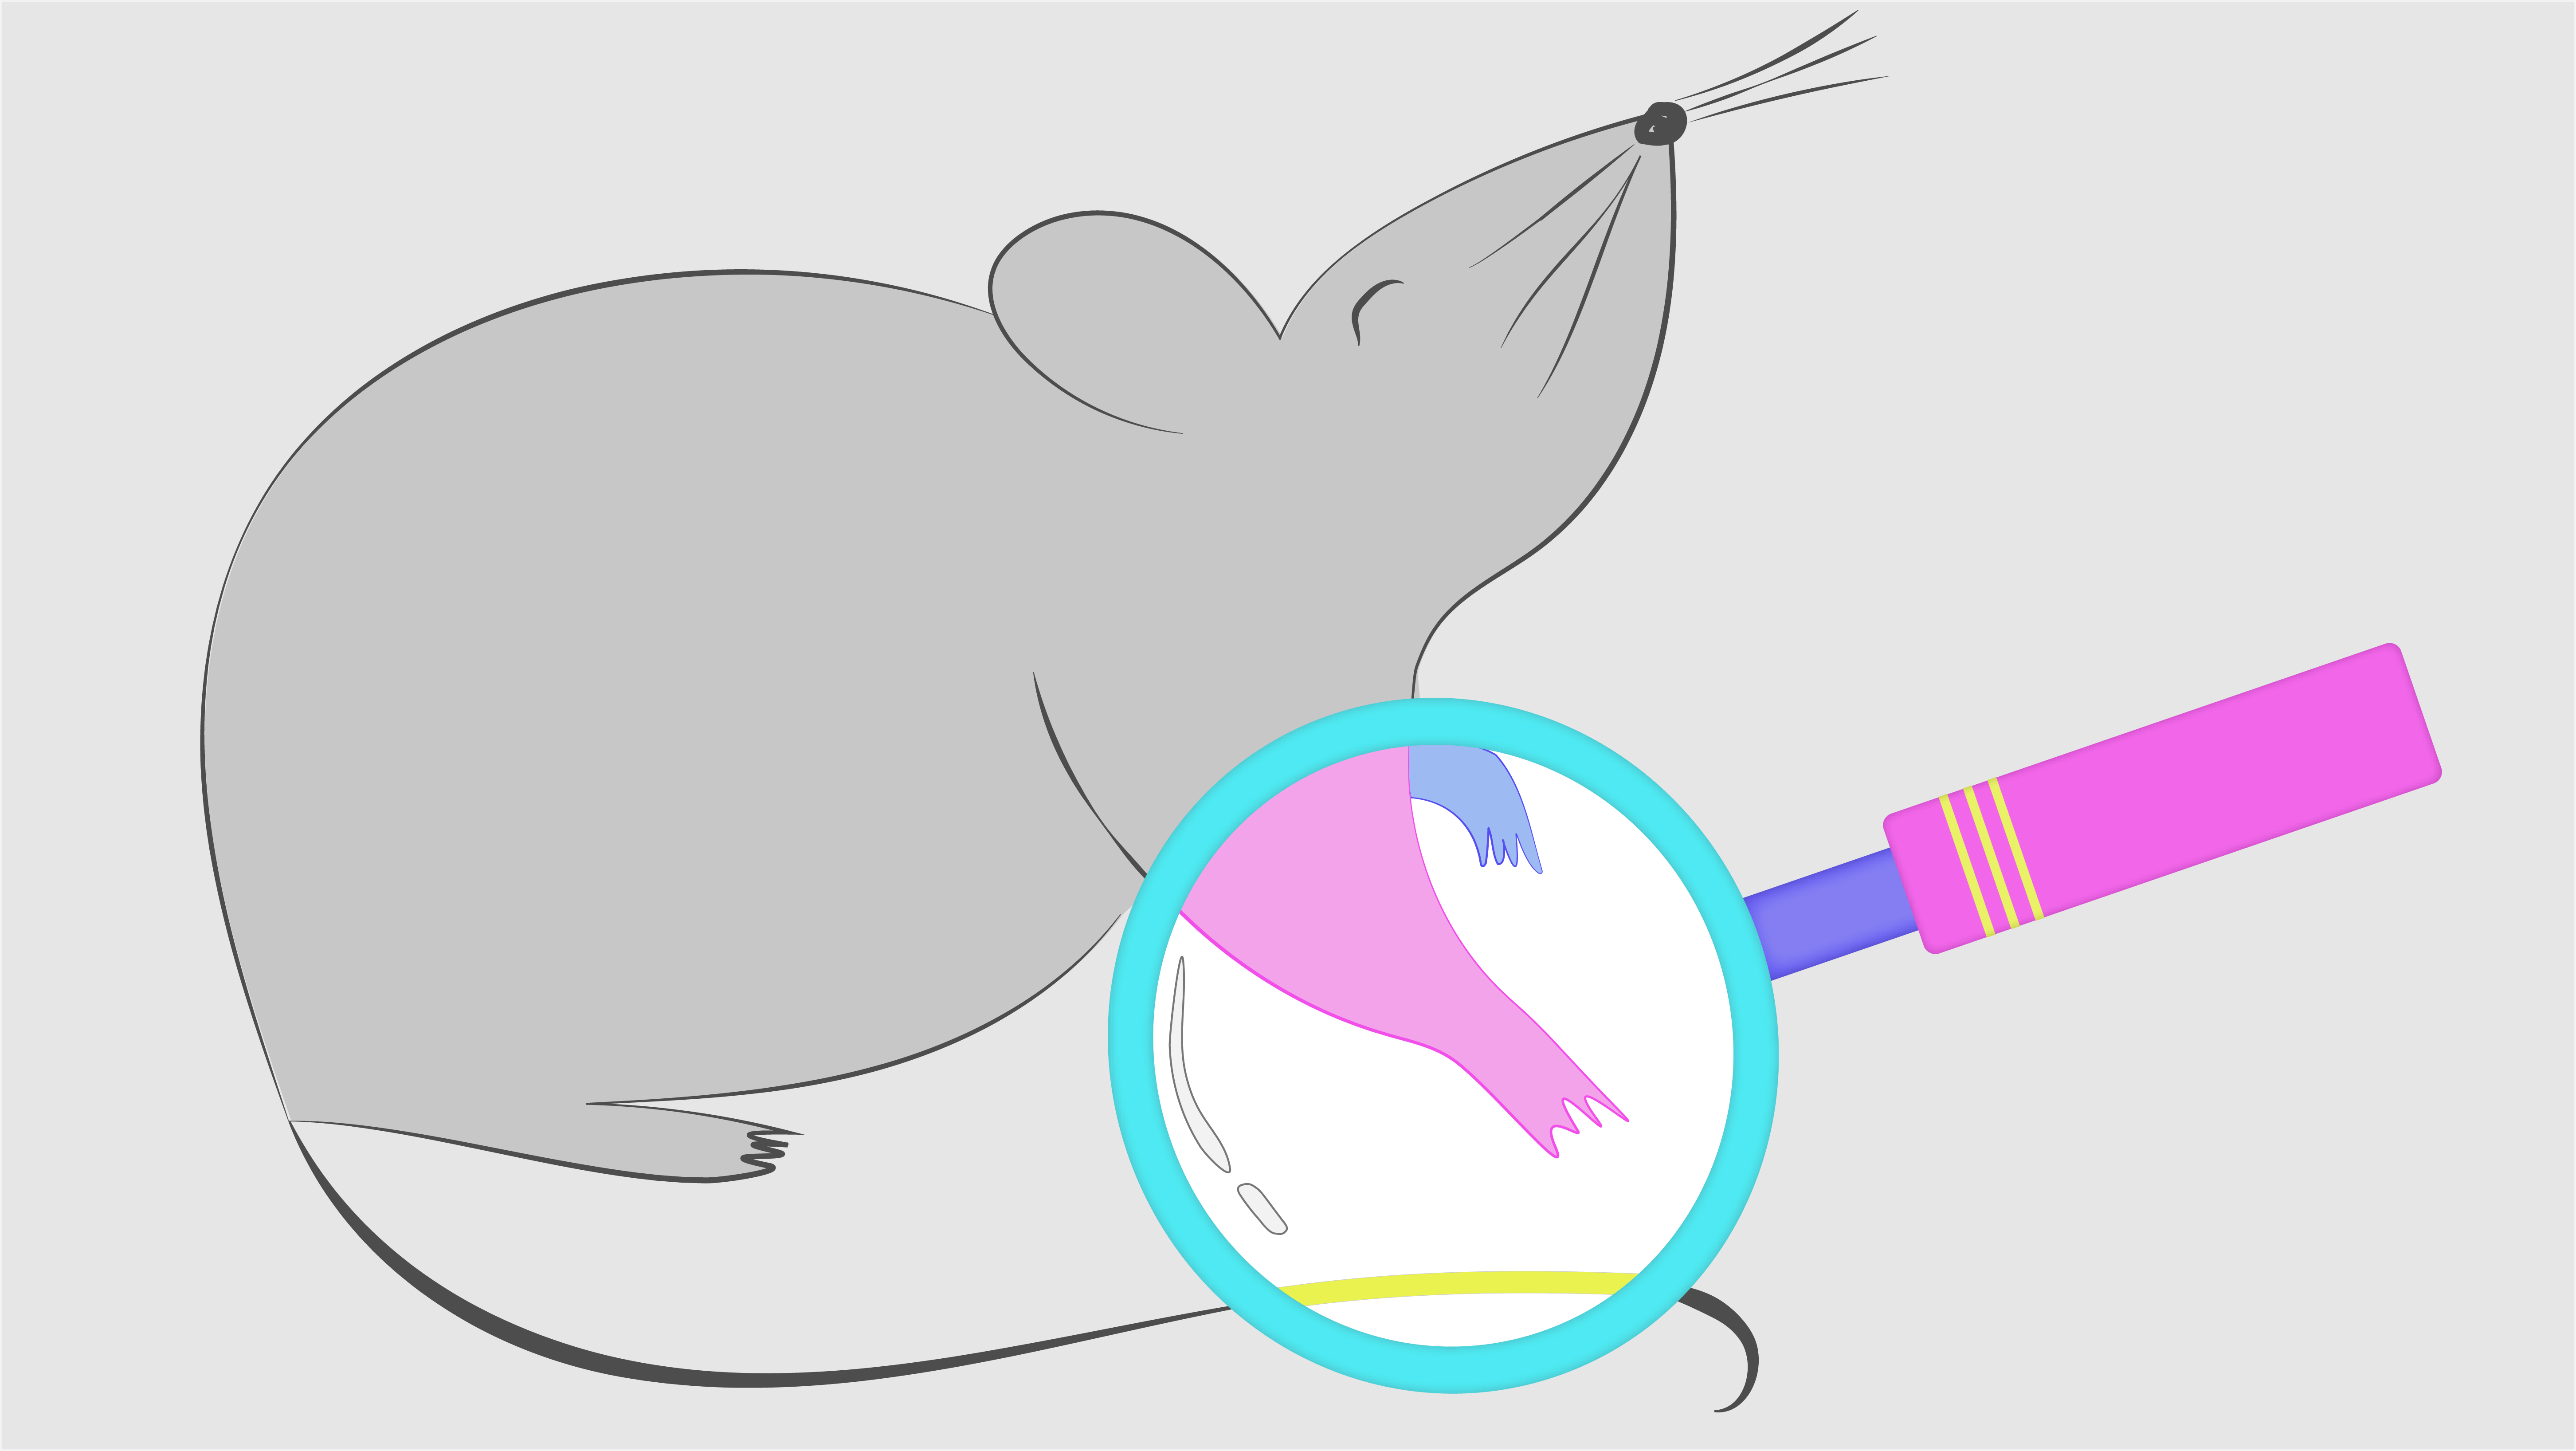 An illustration of a rat with a magnifying glass held up to it. Rather than magnifying it, the glass turns the grey rat technicolour.